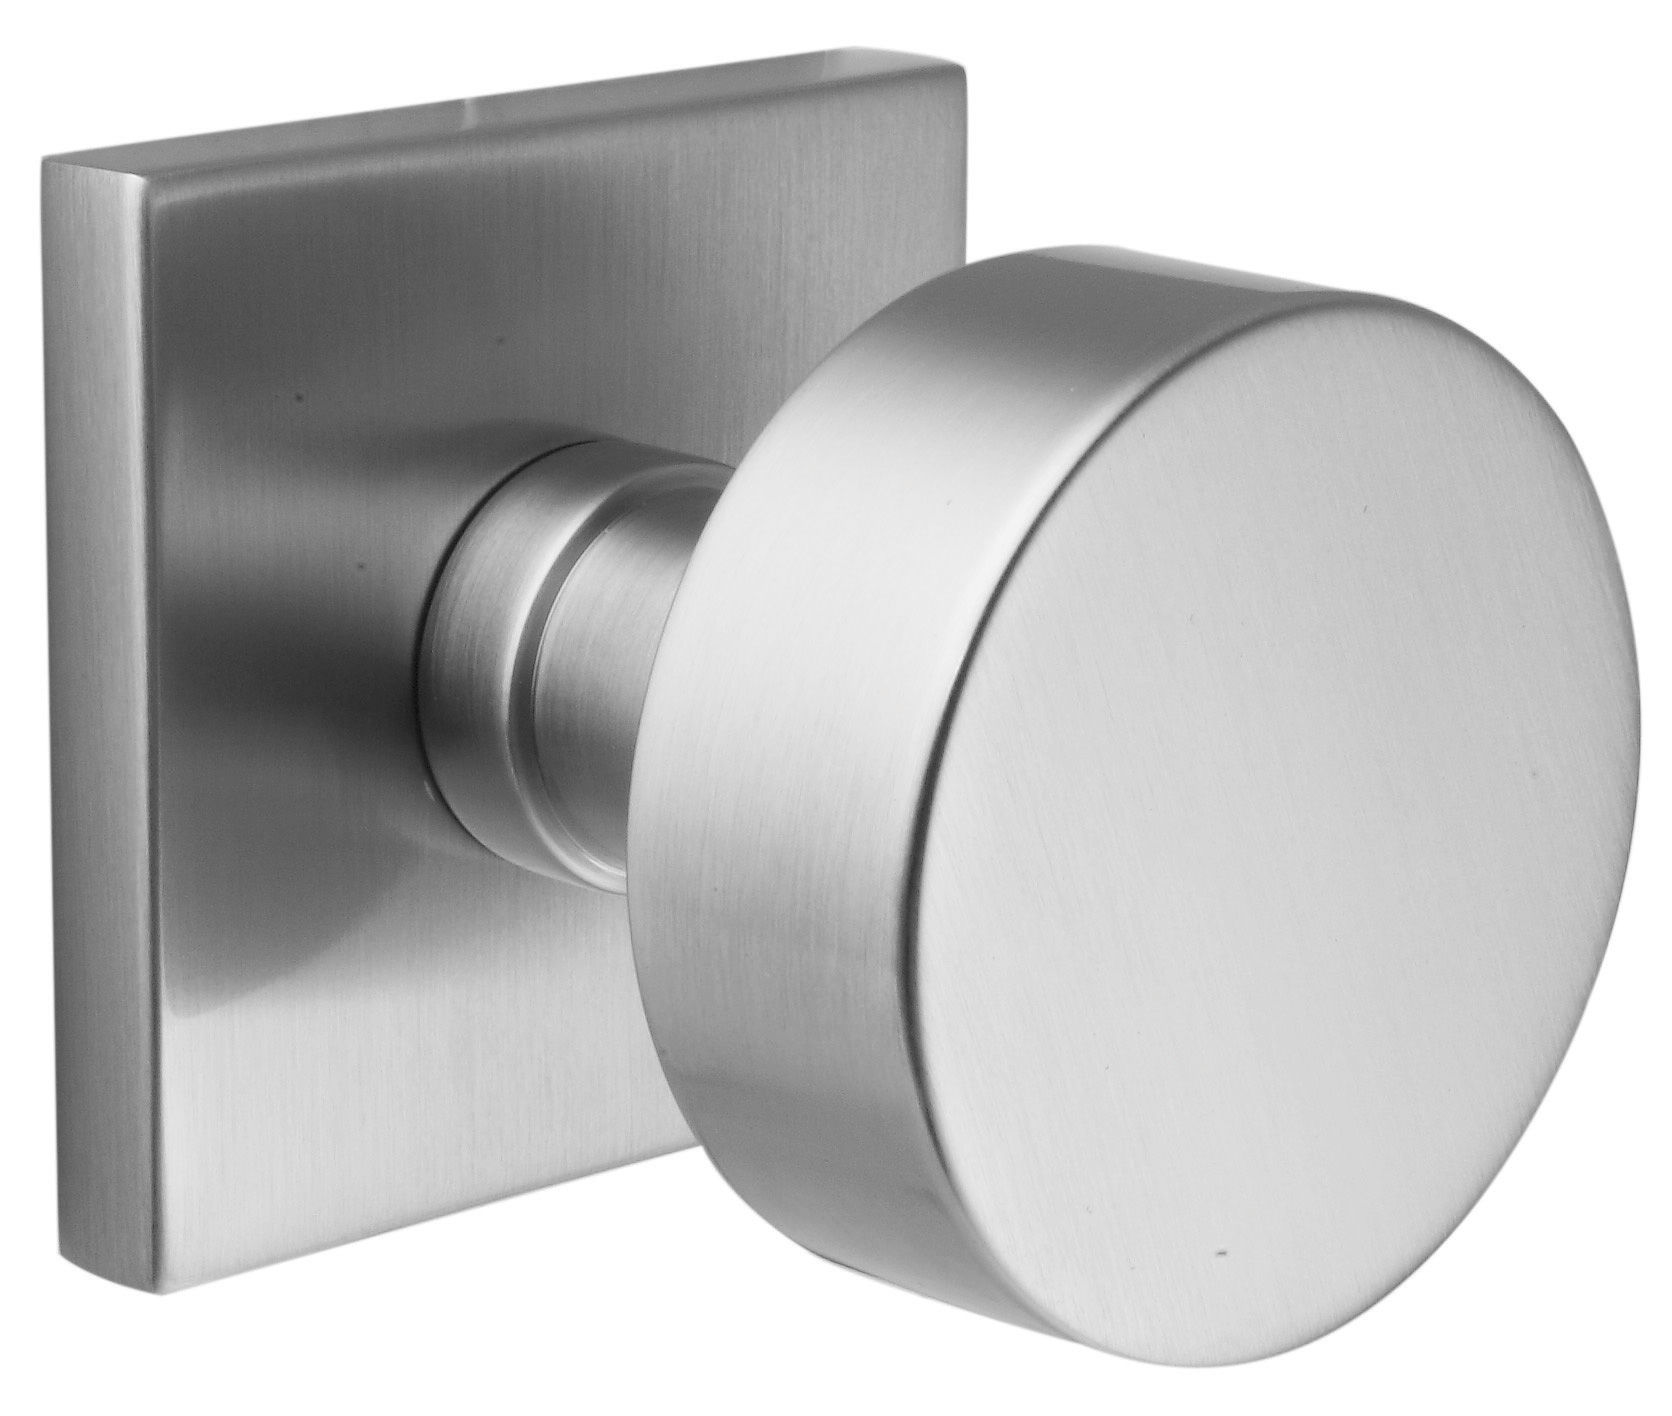 Emtek 520ROUUS10B Oil Rubbed Bronze Round Privacy Door Knob Set From The  Brass Modern Collection   Handlesets.com